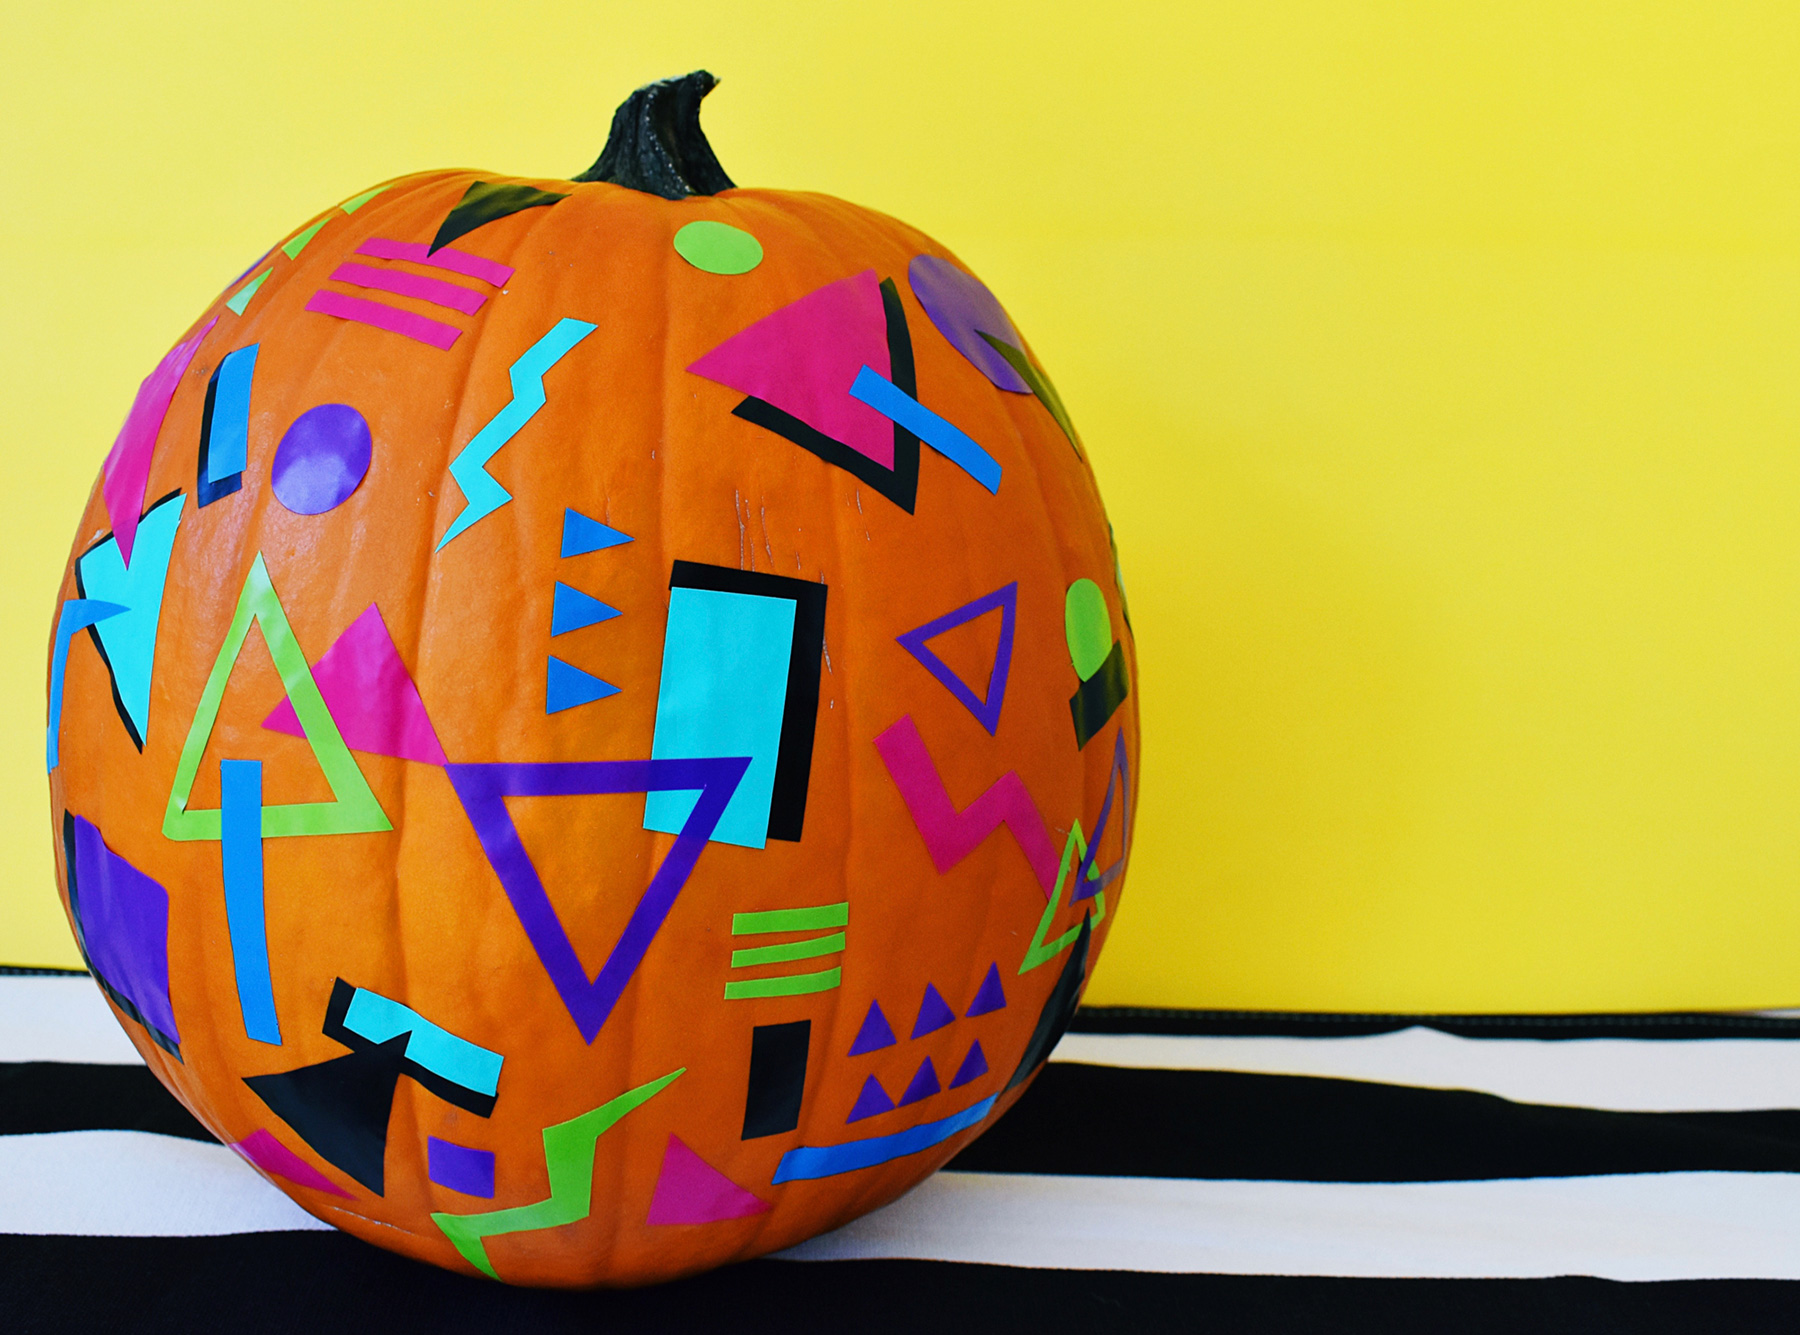 No carve pumpkin ideas - 80s Totally Rad Pumpkin